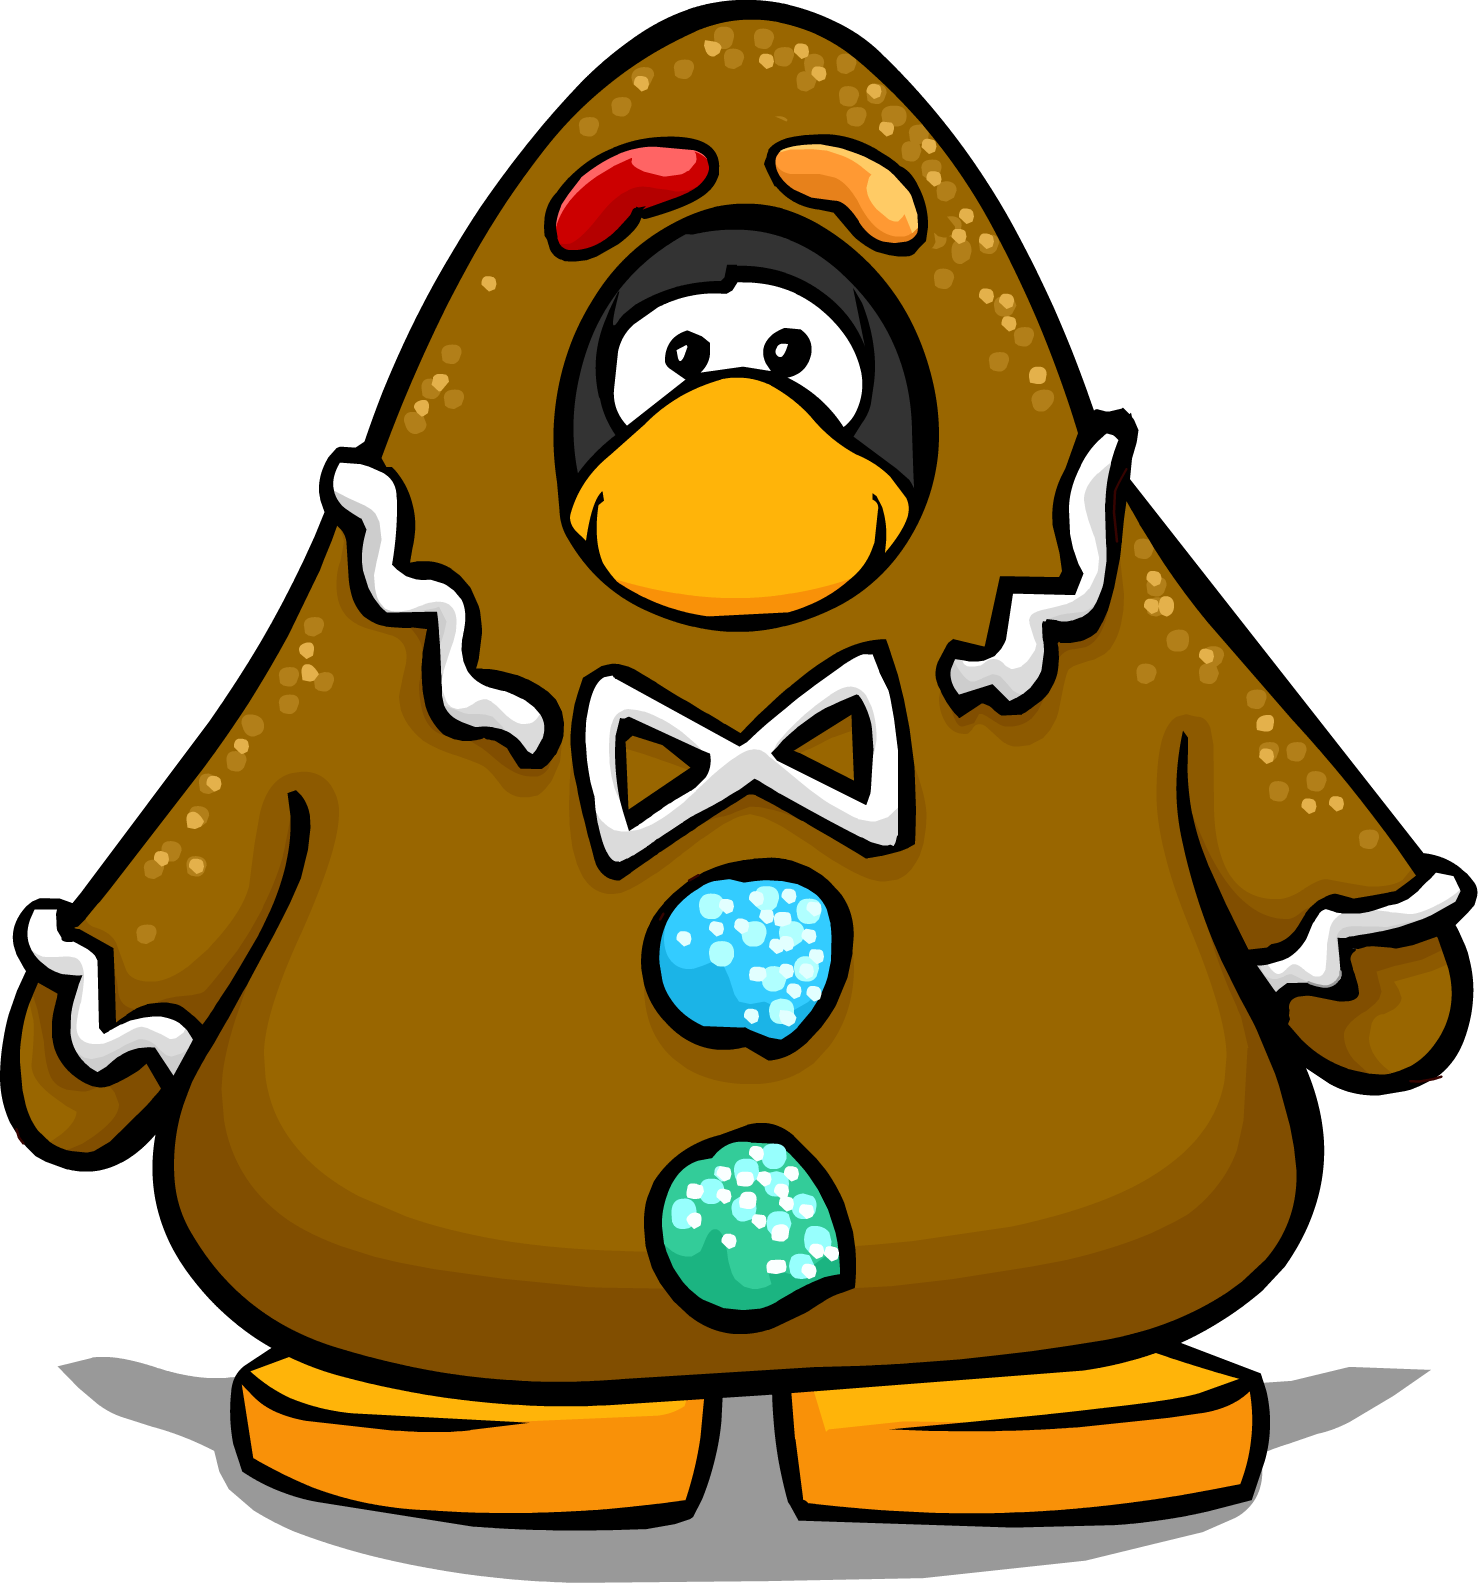 Image costume pc png. Gingerbread clipart ninja